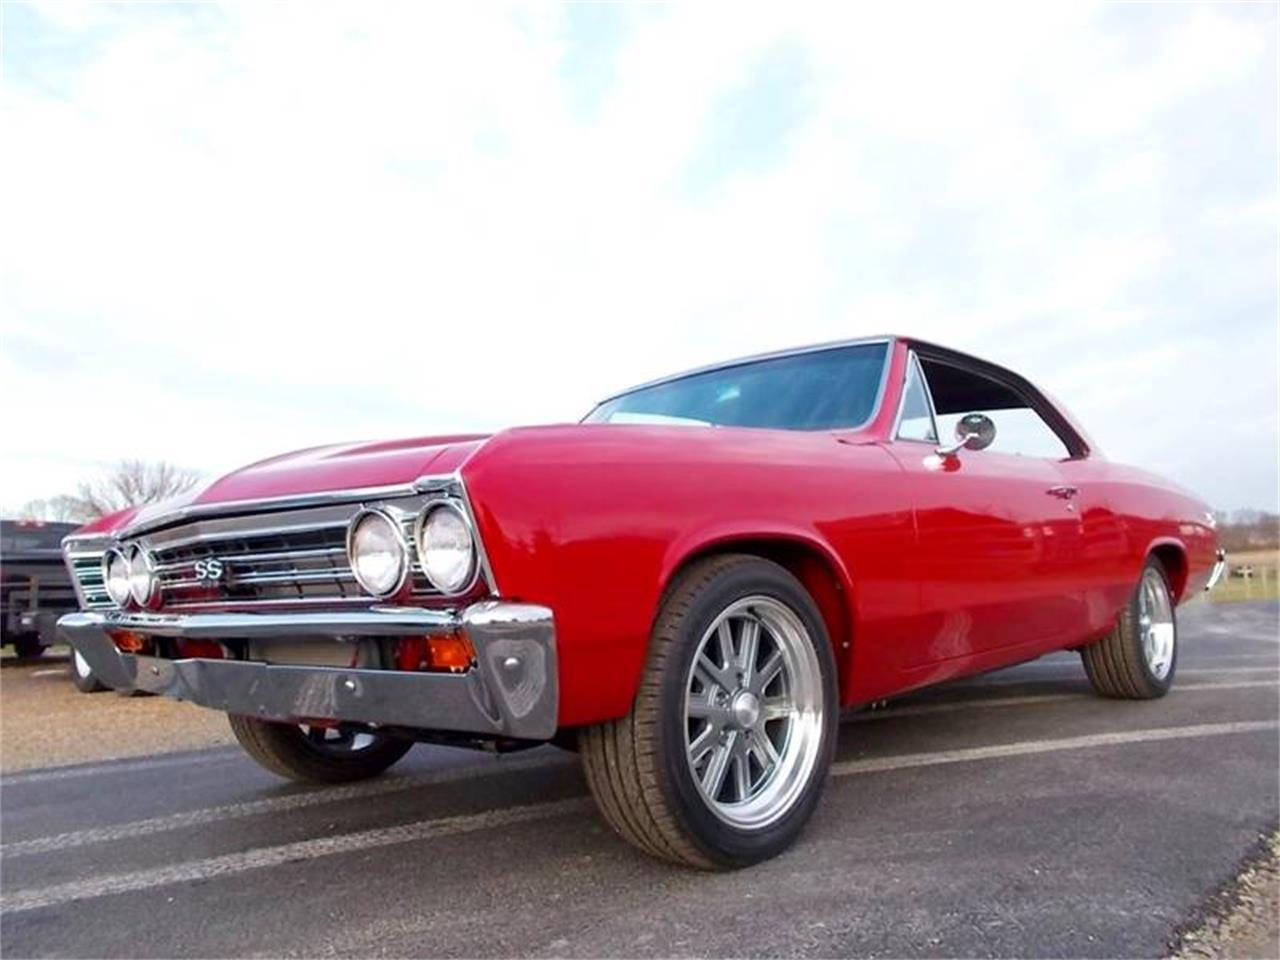 Large Picture of Classic '67 Chevrolet Chevelle Malibu located in Knightstown Indiana - $44,900.00 - P7S2